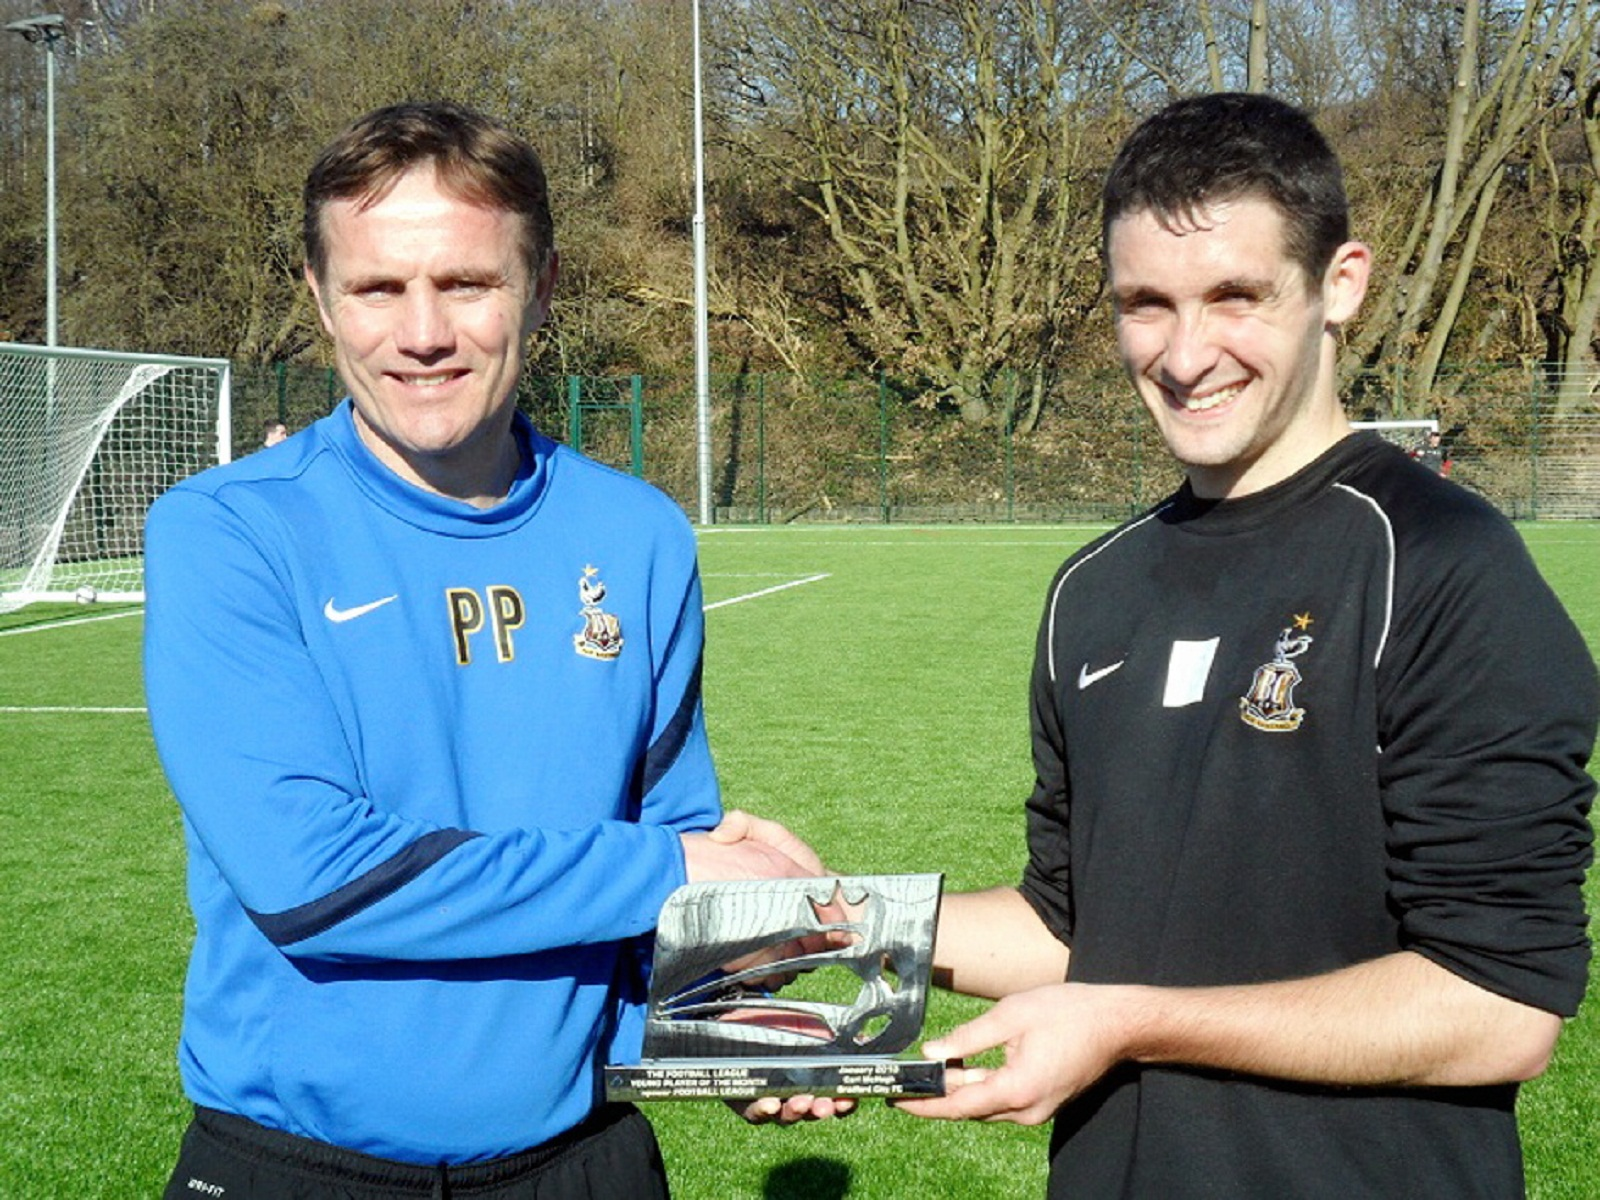 Carl McHugh, pictured receiving his young player of the month award from Phil Parkinson, has displayed real maturity in big games